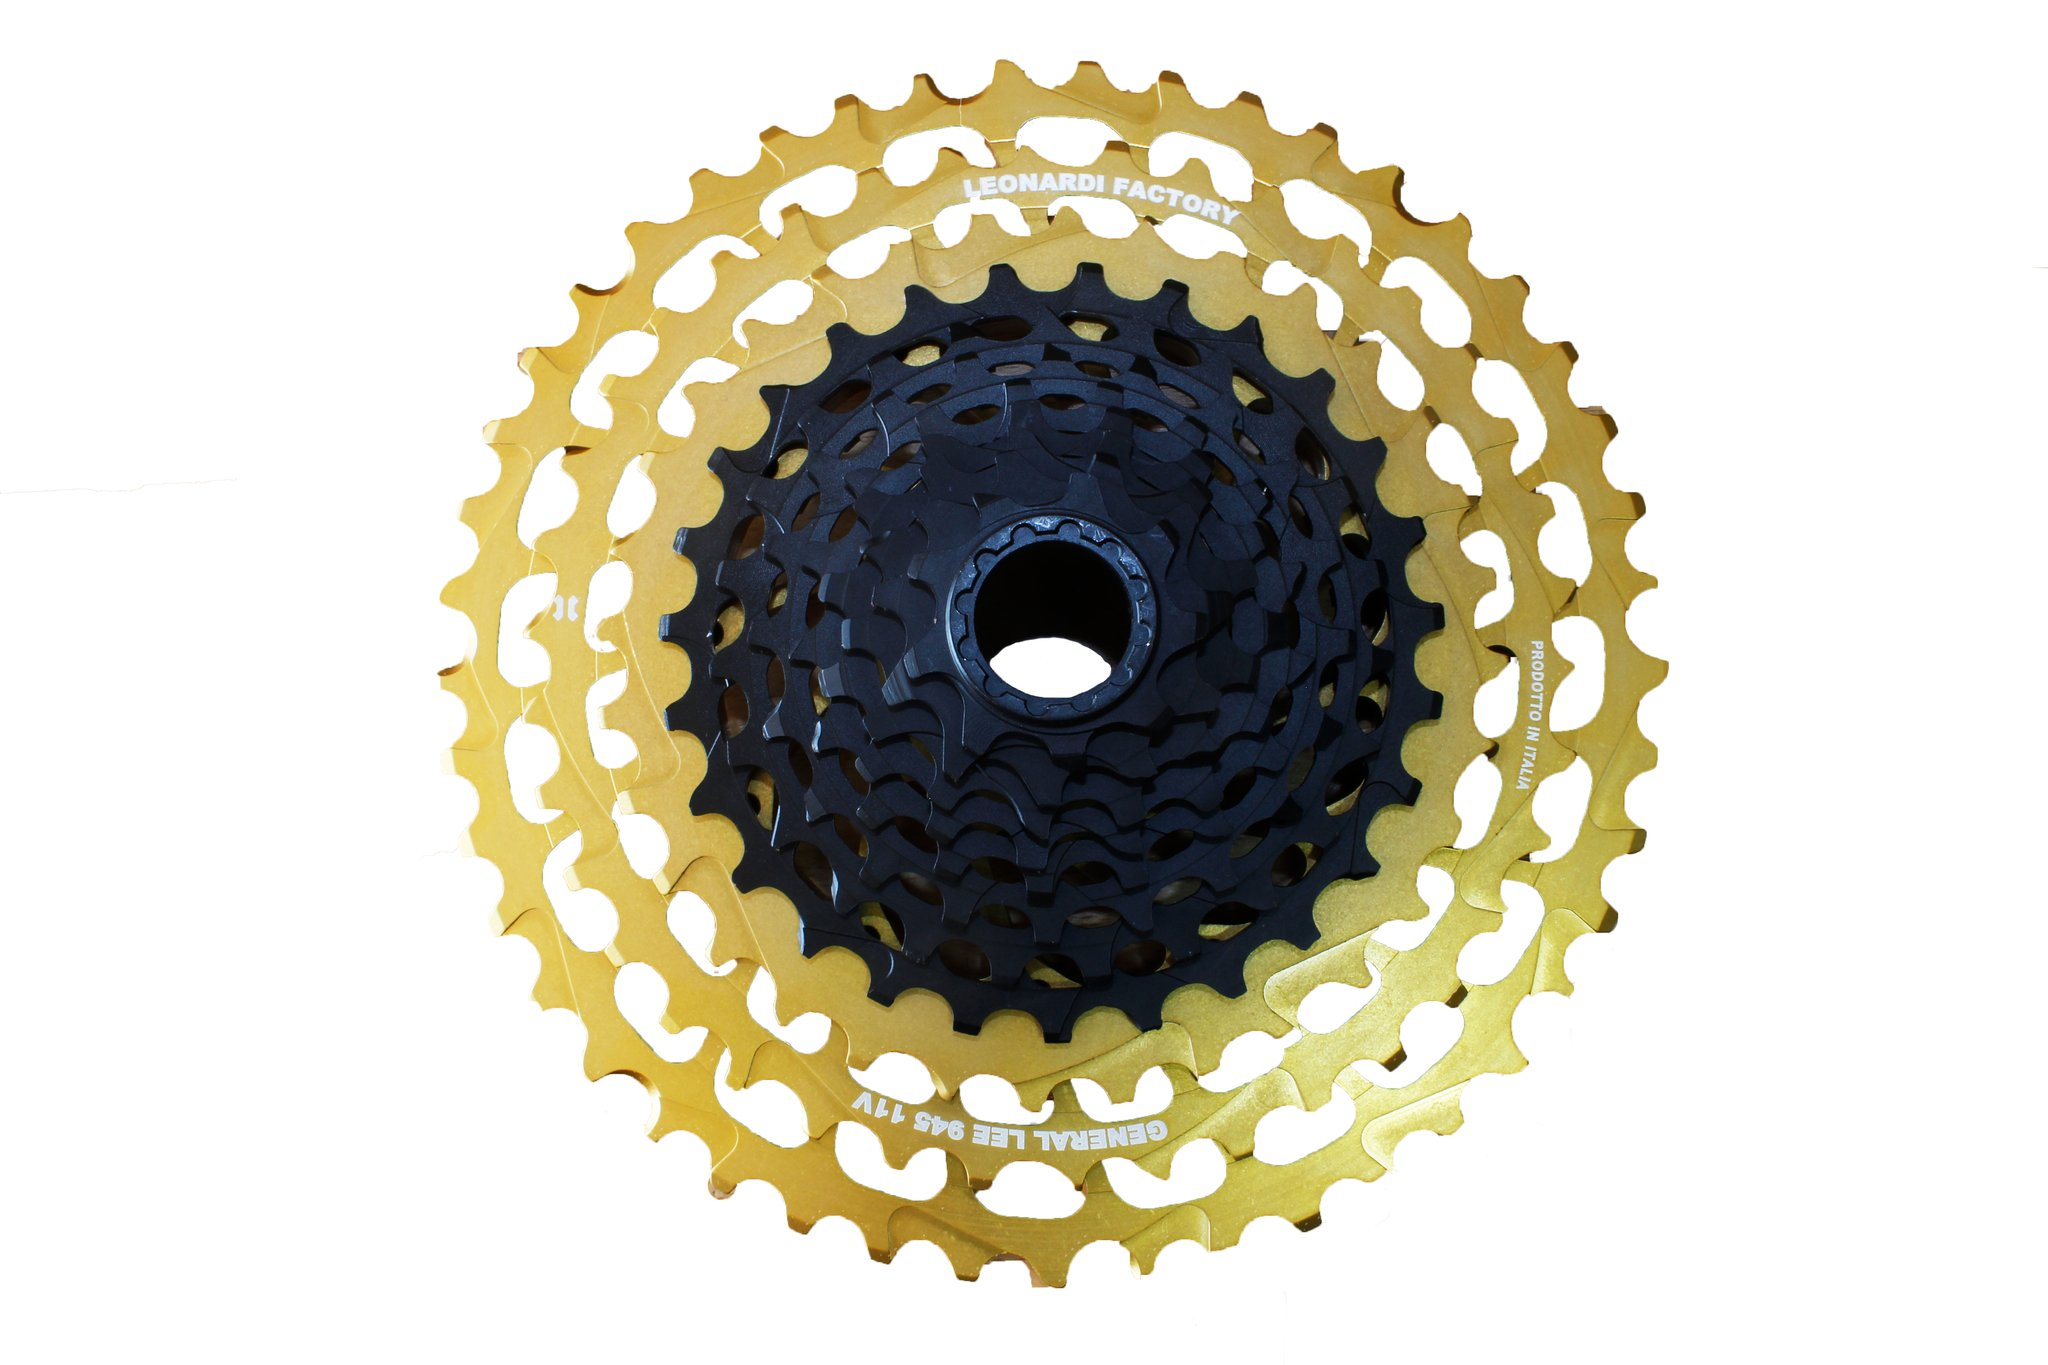 Leonardi Factory General Lee 945 V11 - 11 Speed Cassette Black/Gold